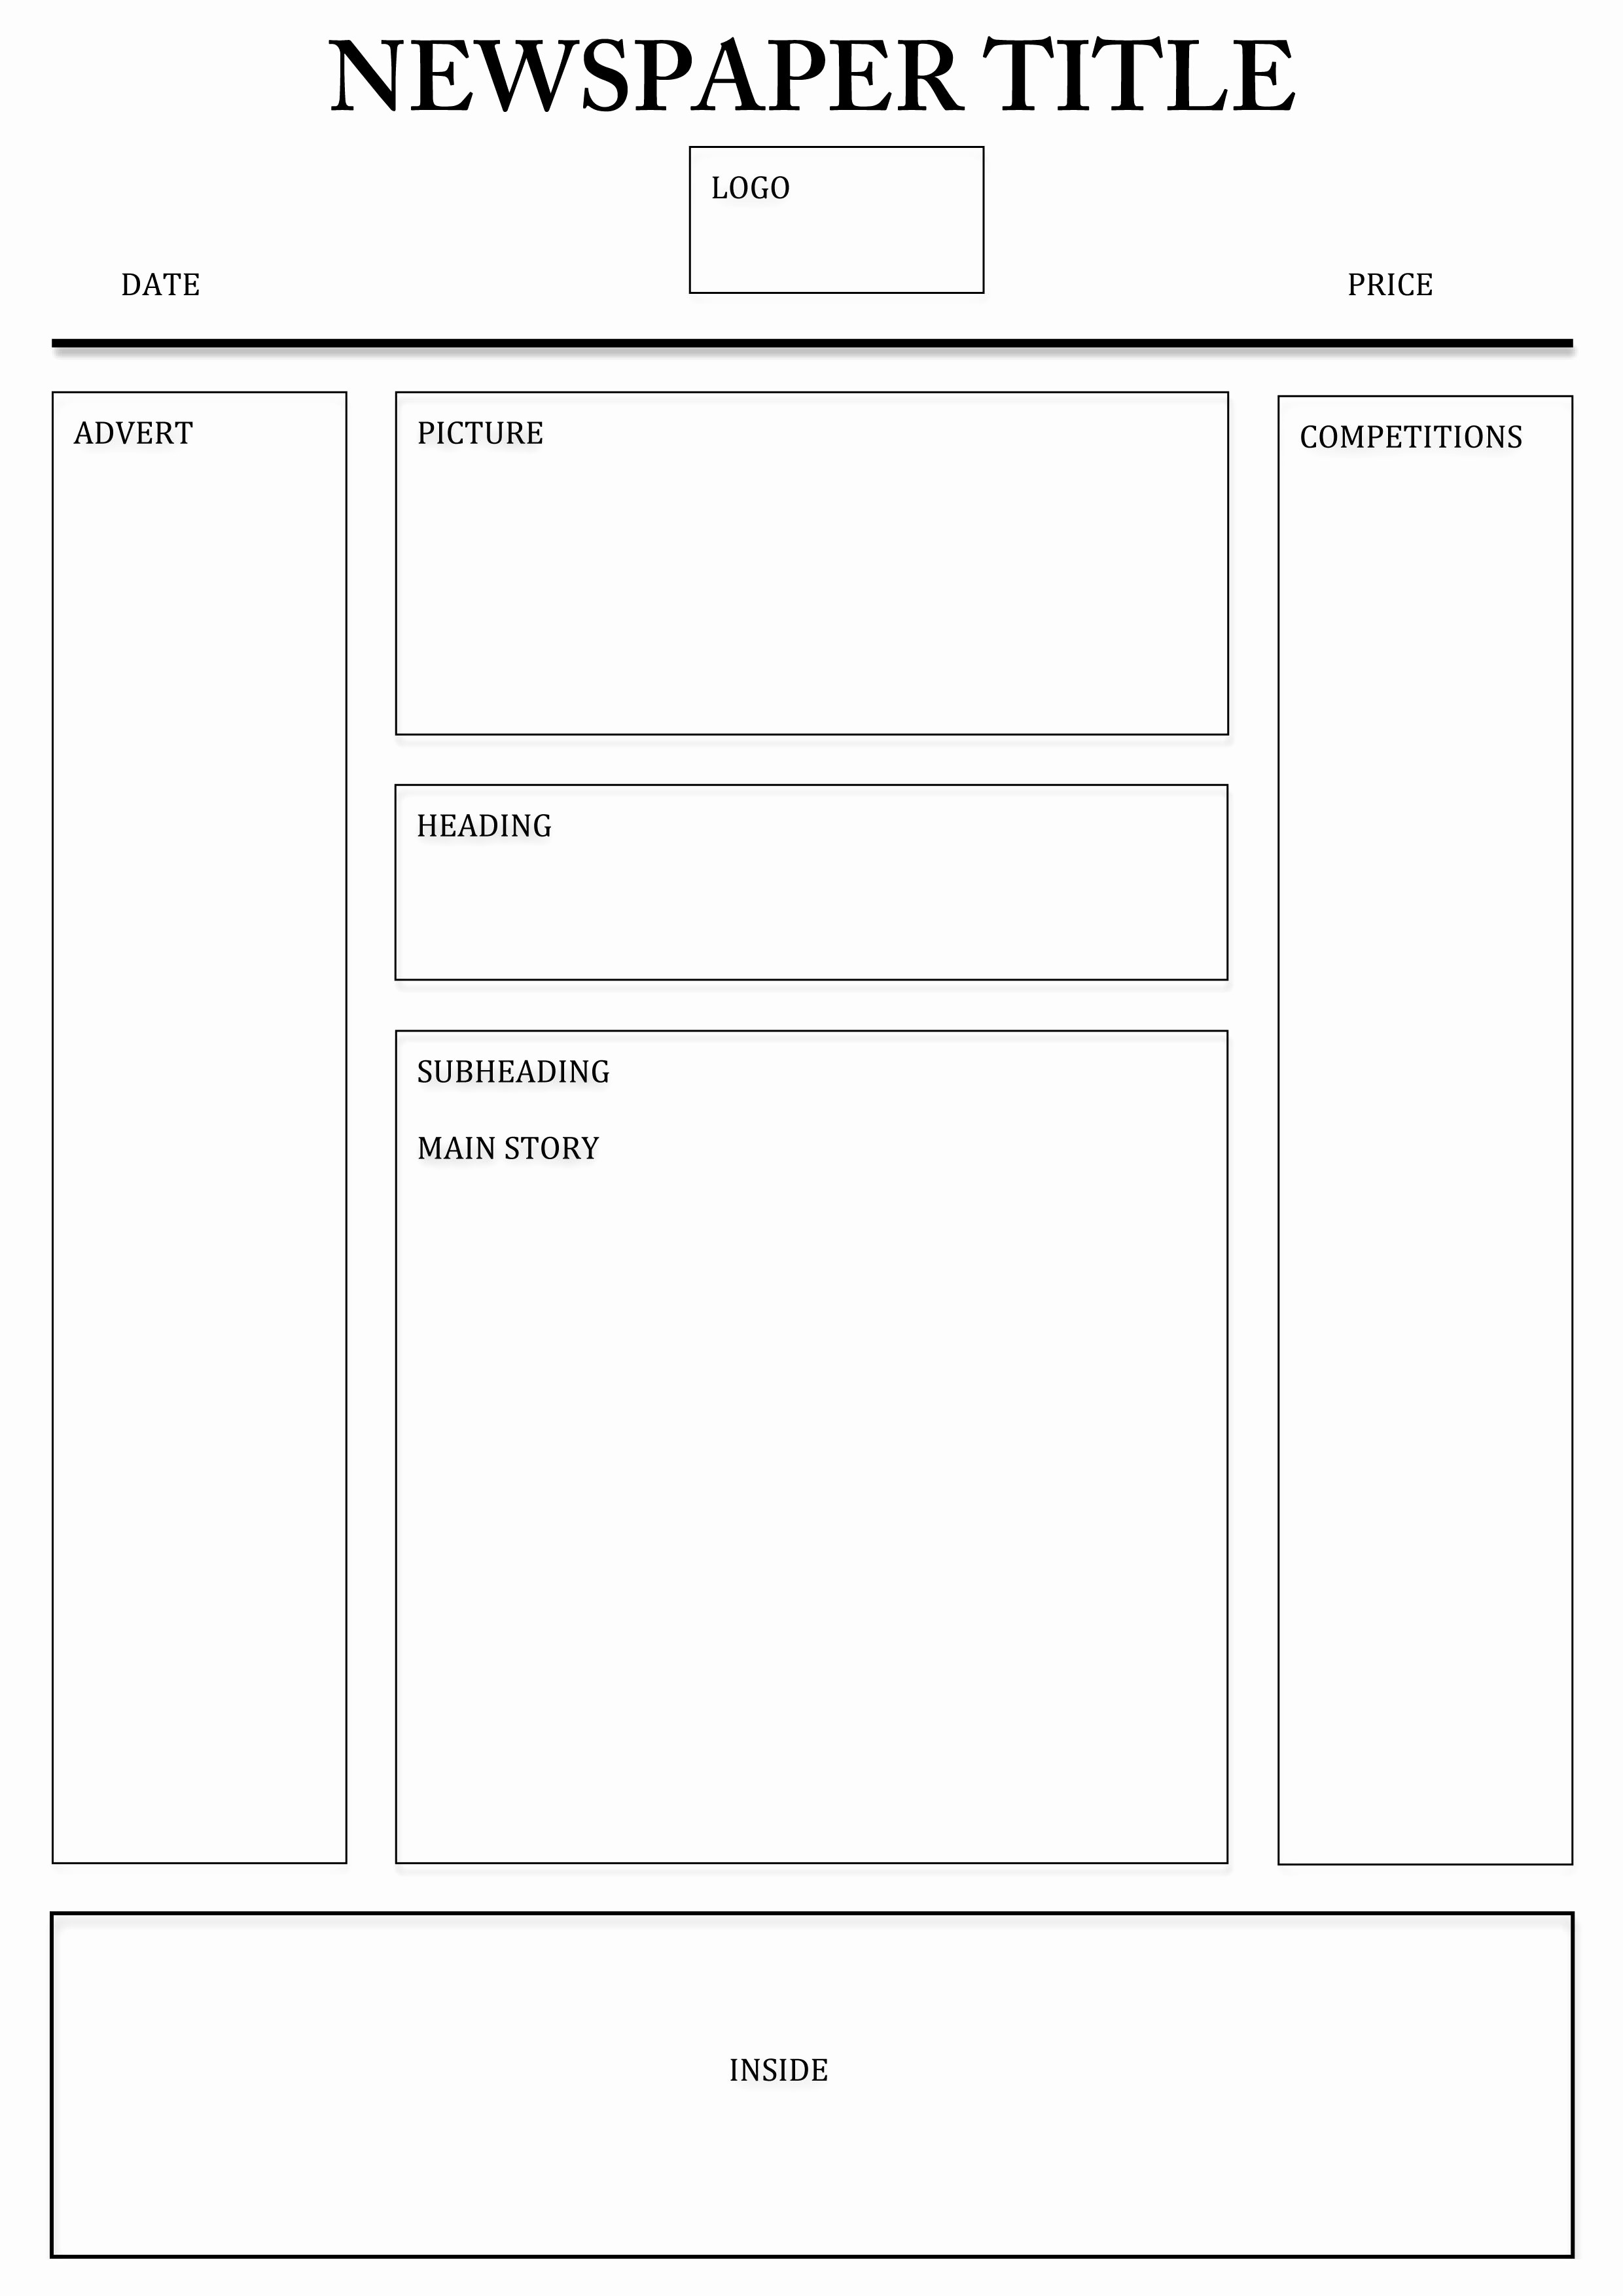 Newspaper Template for Word 2013 Inspirational Newspaper Template – 4